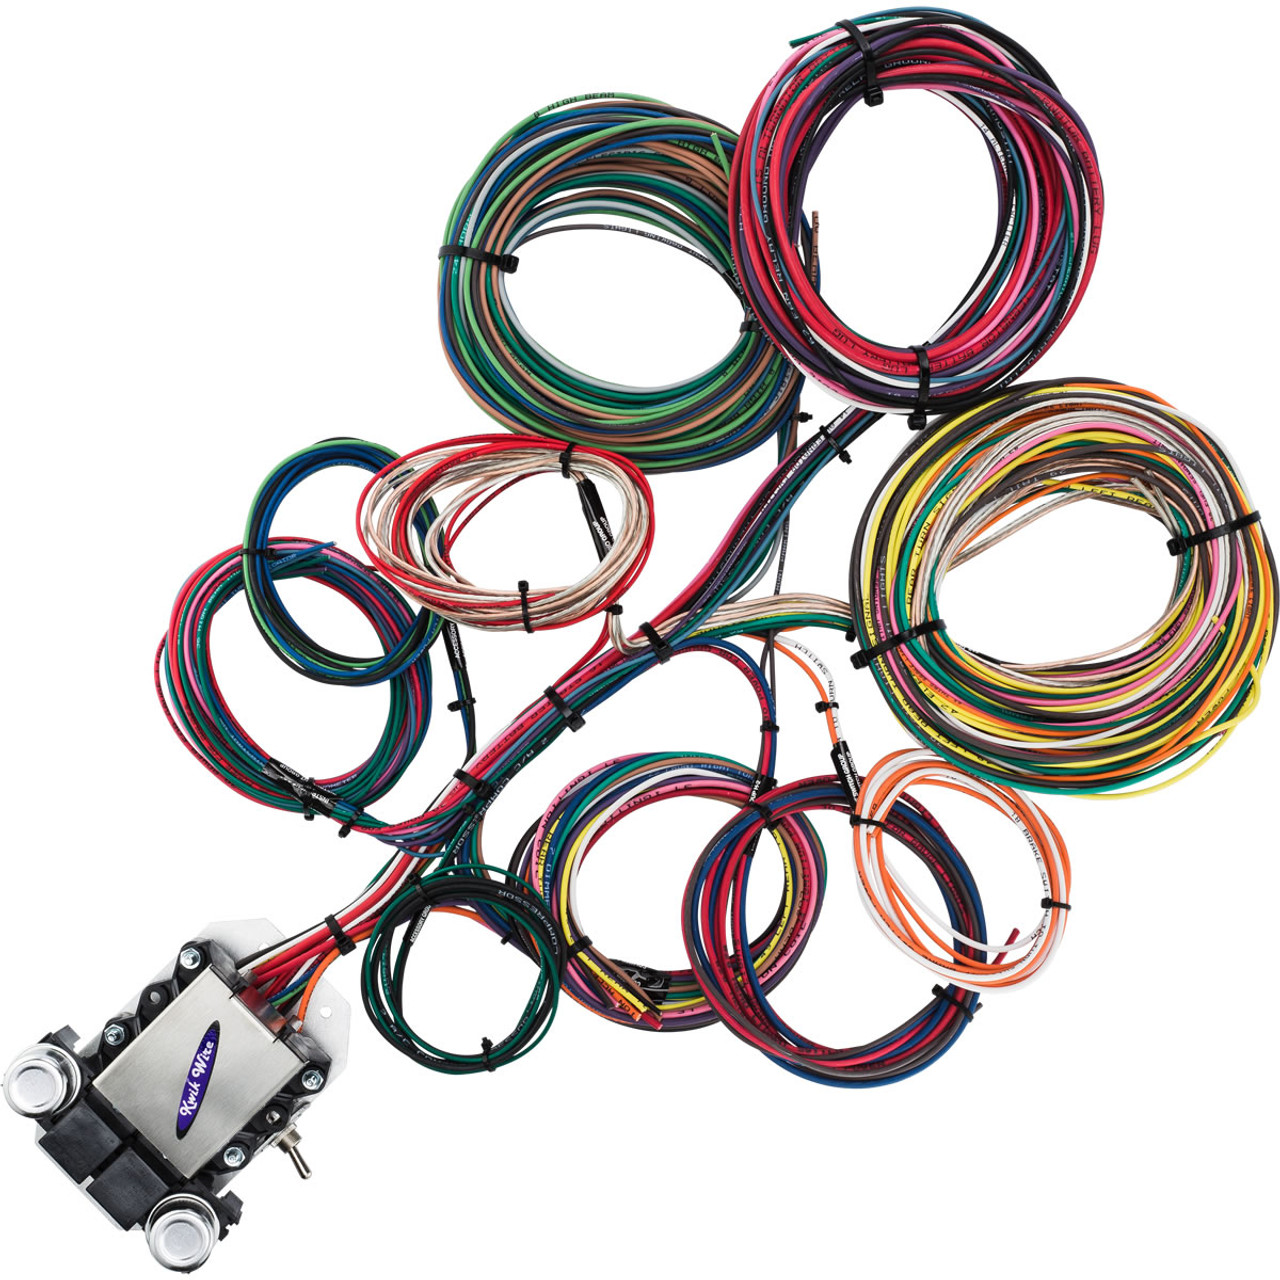 Ford Wiring Harness Schema Diagram Online Parts 14 Circuit Wire Kwikwire Com Electrify Your Ride Connector